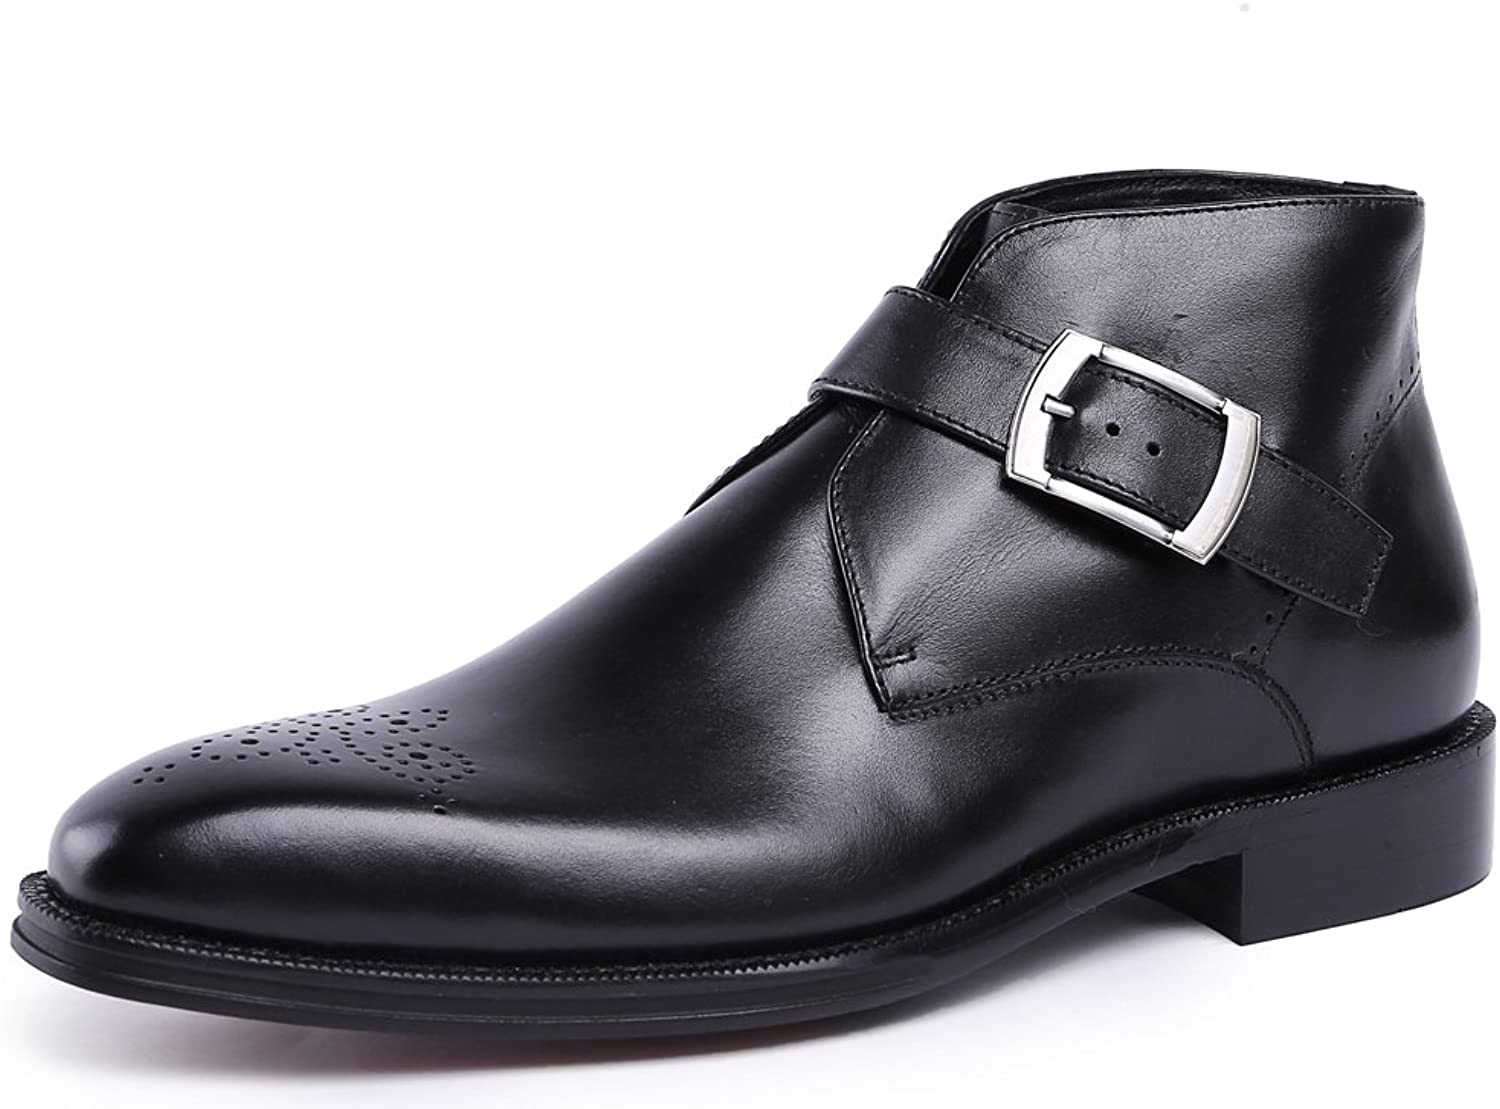 MedzRE Men's Monk Strap Formal Dress Oxford Buckle Ankle Boots